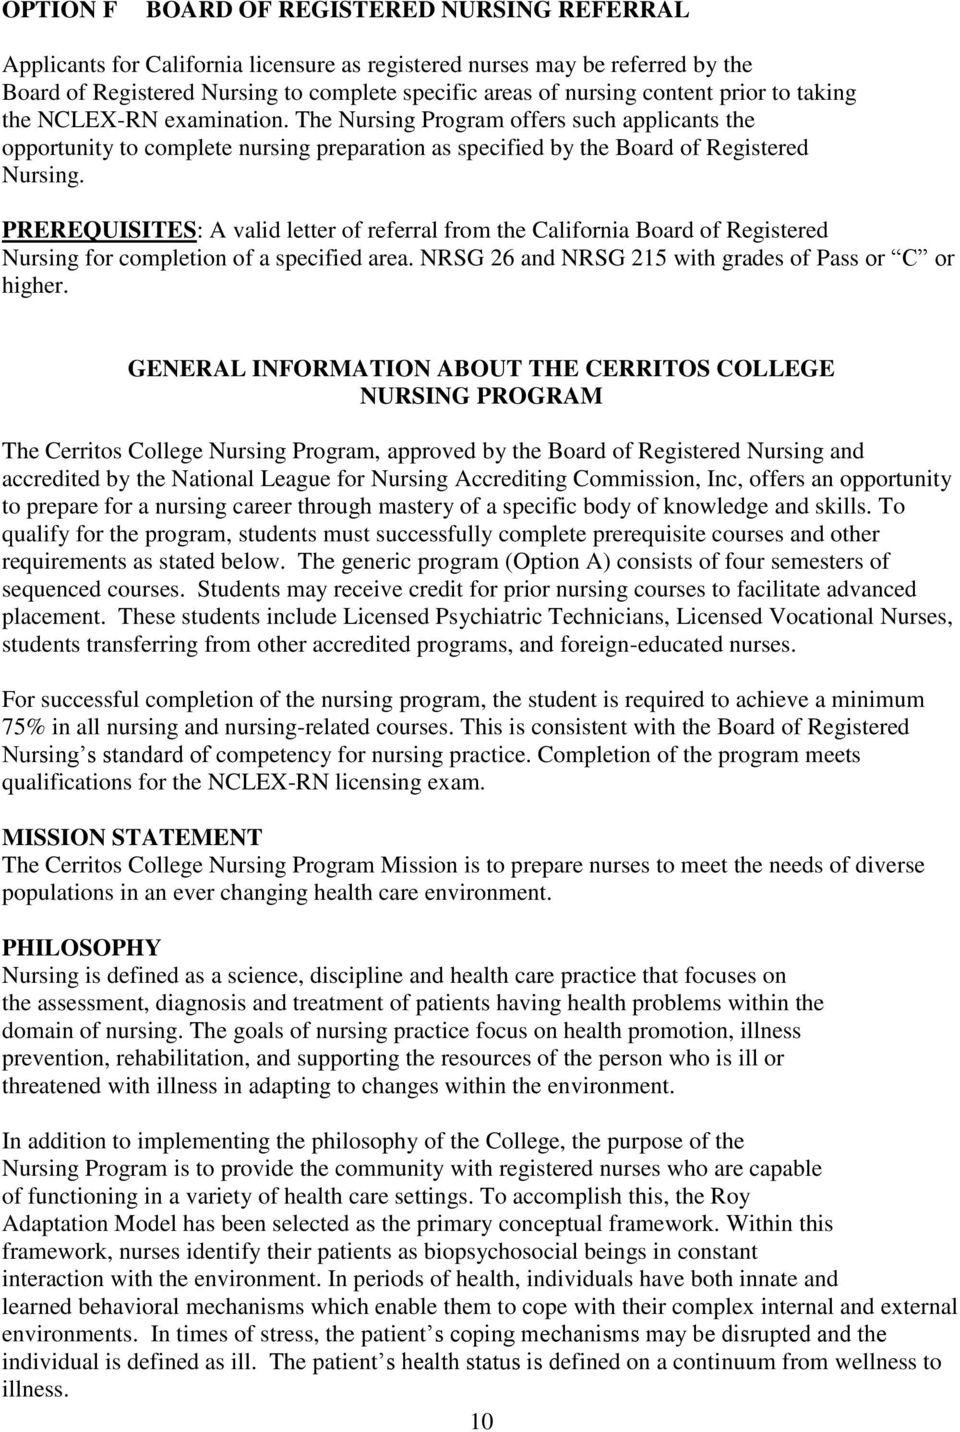 PREREQUISITES: A valid letter of referral from the California Board of Registered Nursing for completion of a specified area. NRSG 26 and NRSG 215 with grades of Pass or C or higher.